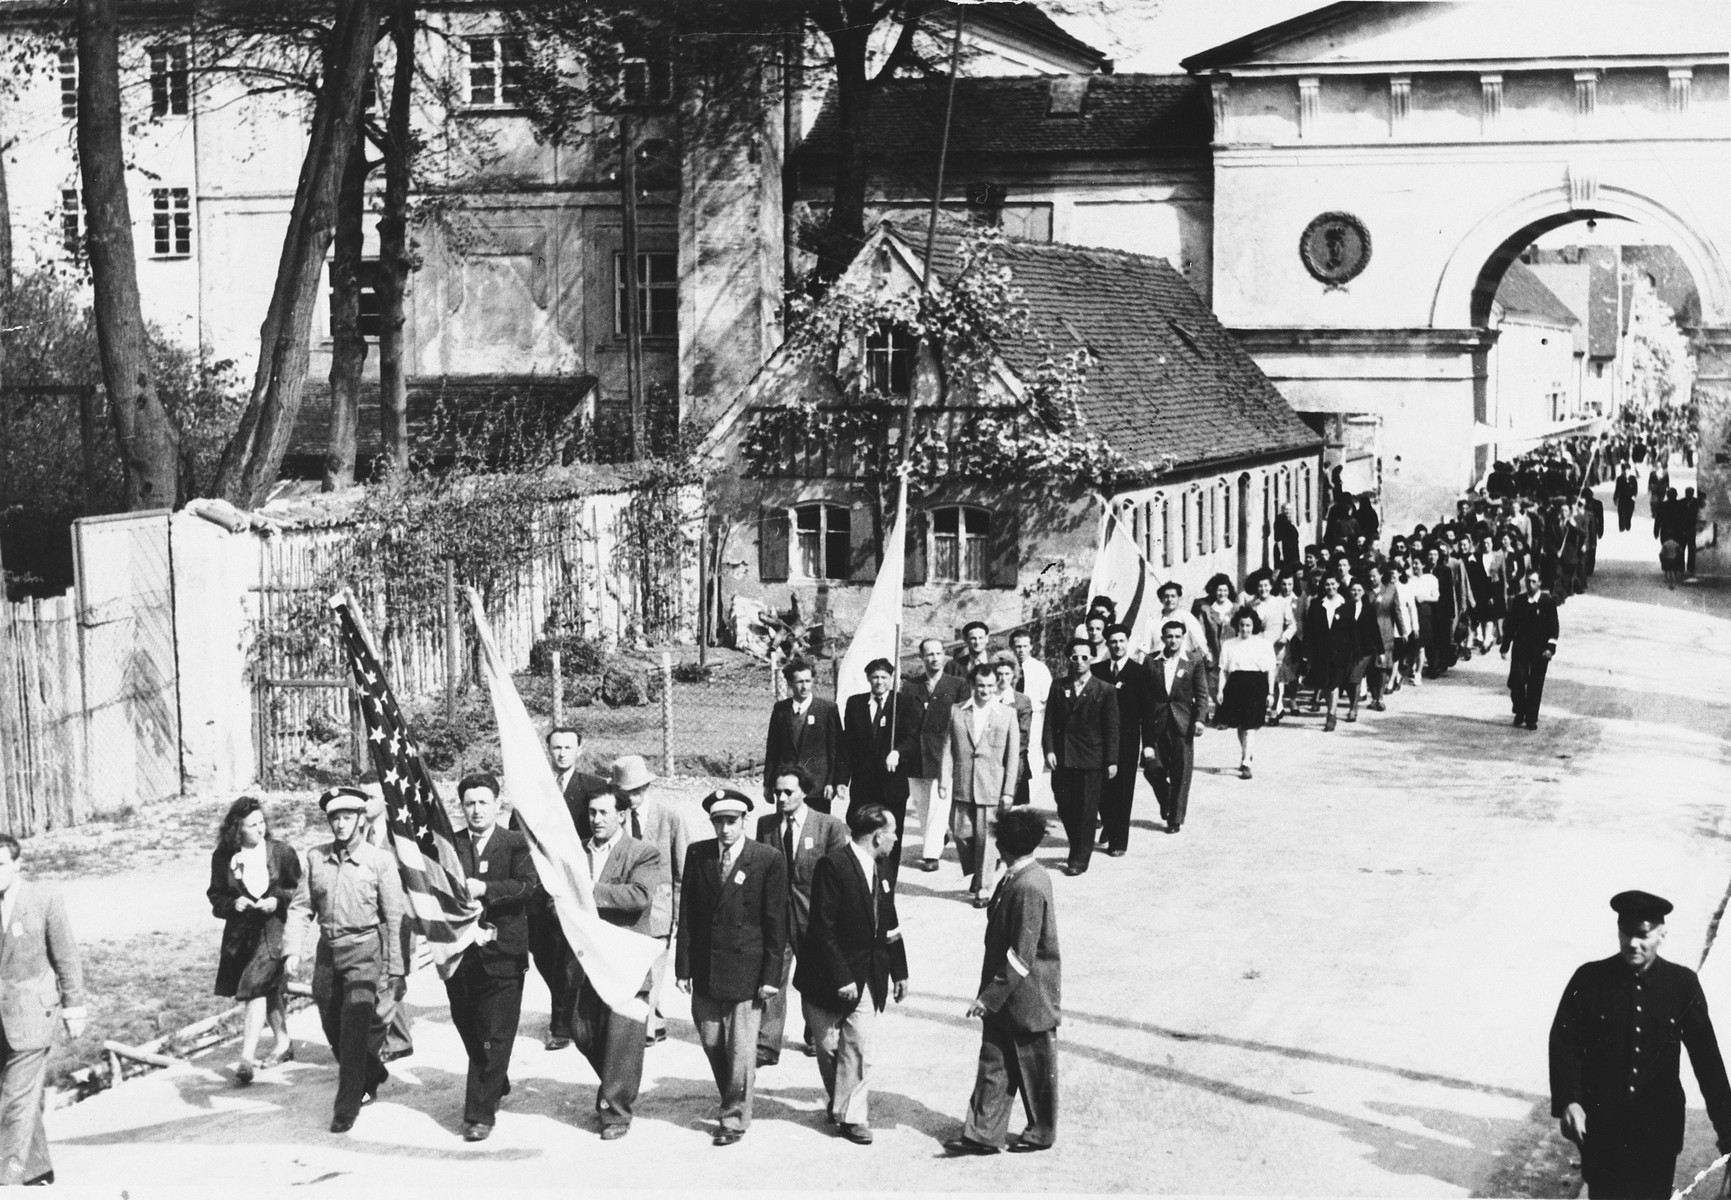 Jewish displaced persons in Tuerkheim march in a memorial parade on the anniversary of the liberation of a concentration camp.